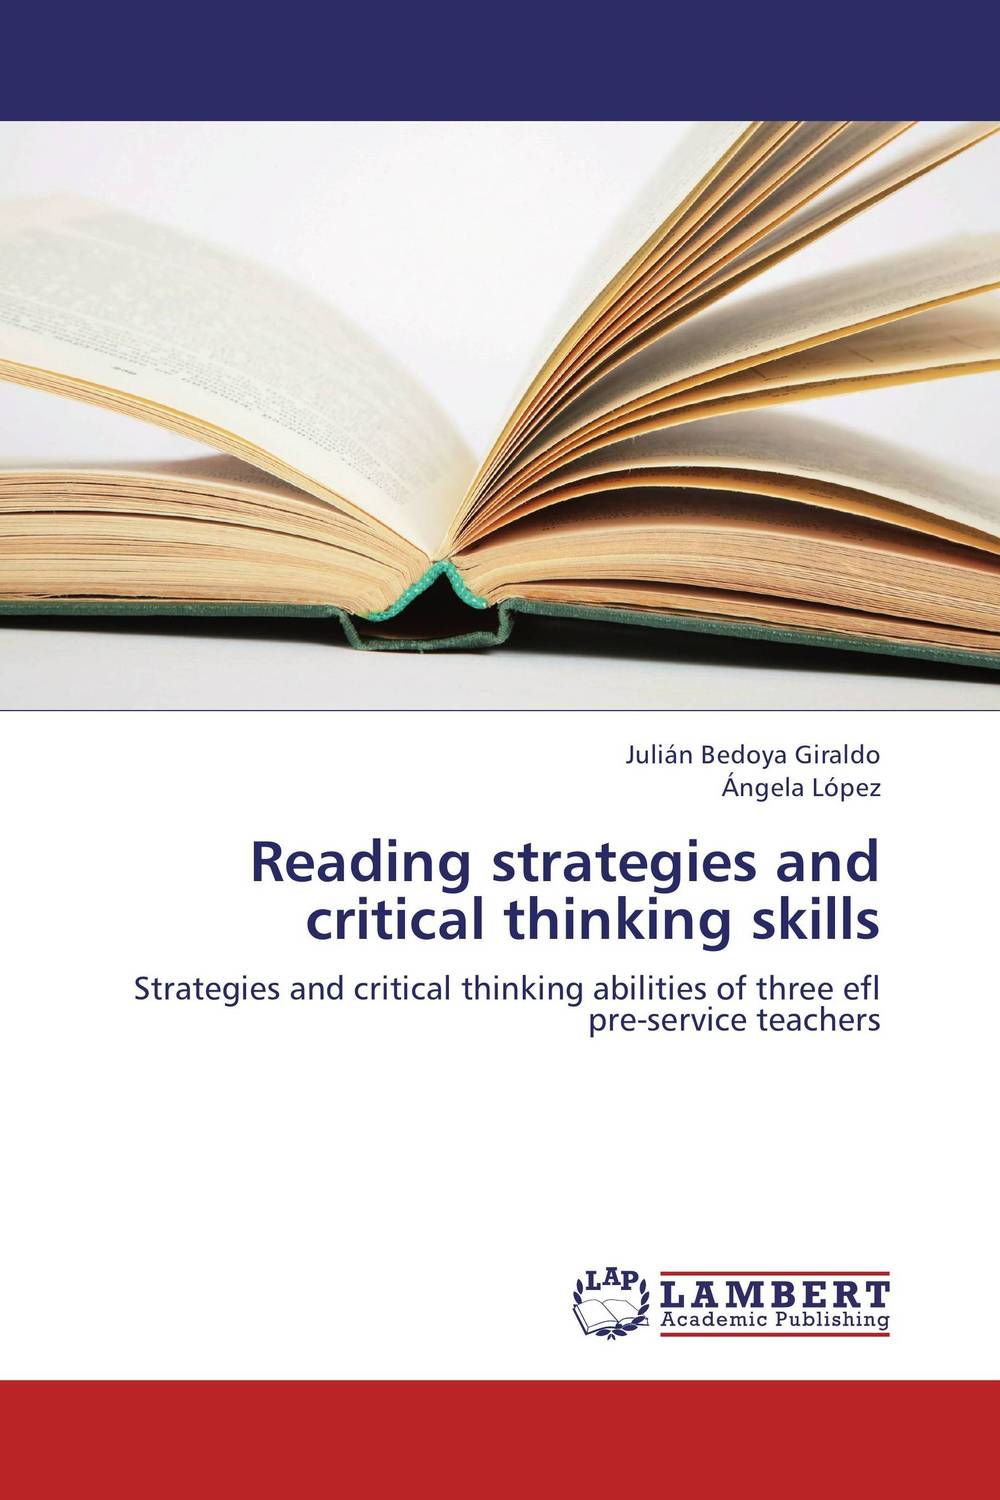 Reading strategies and critical thinking skills